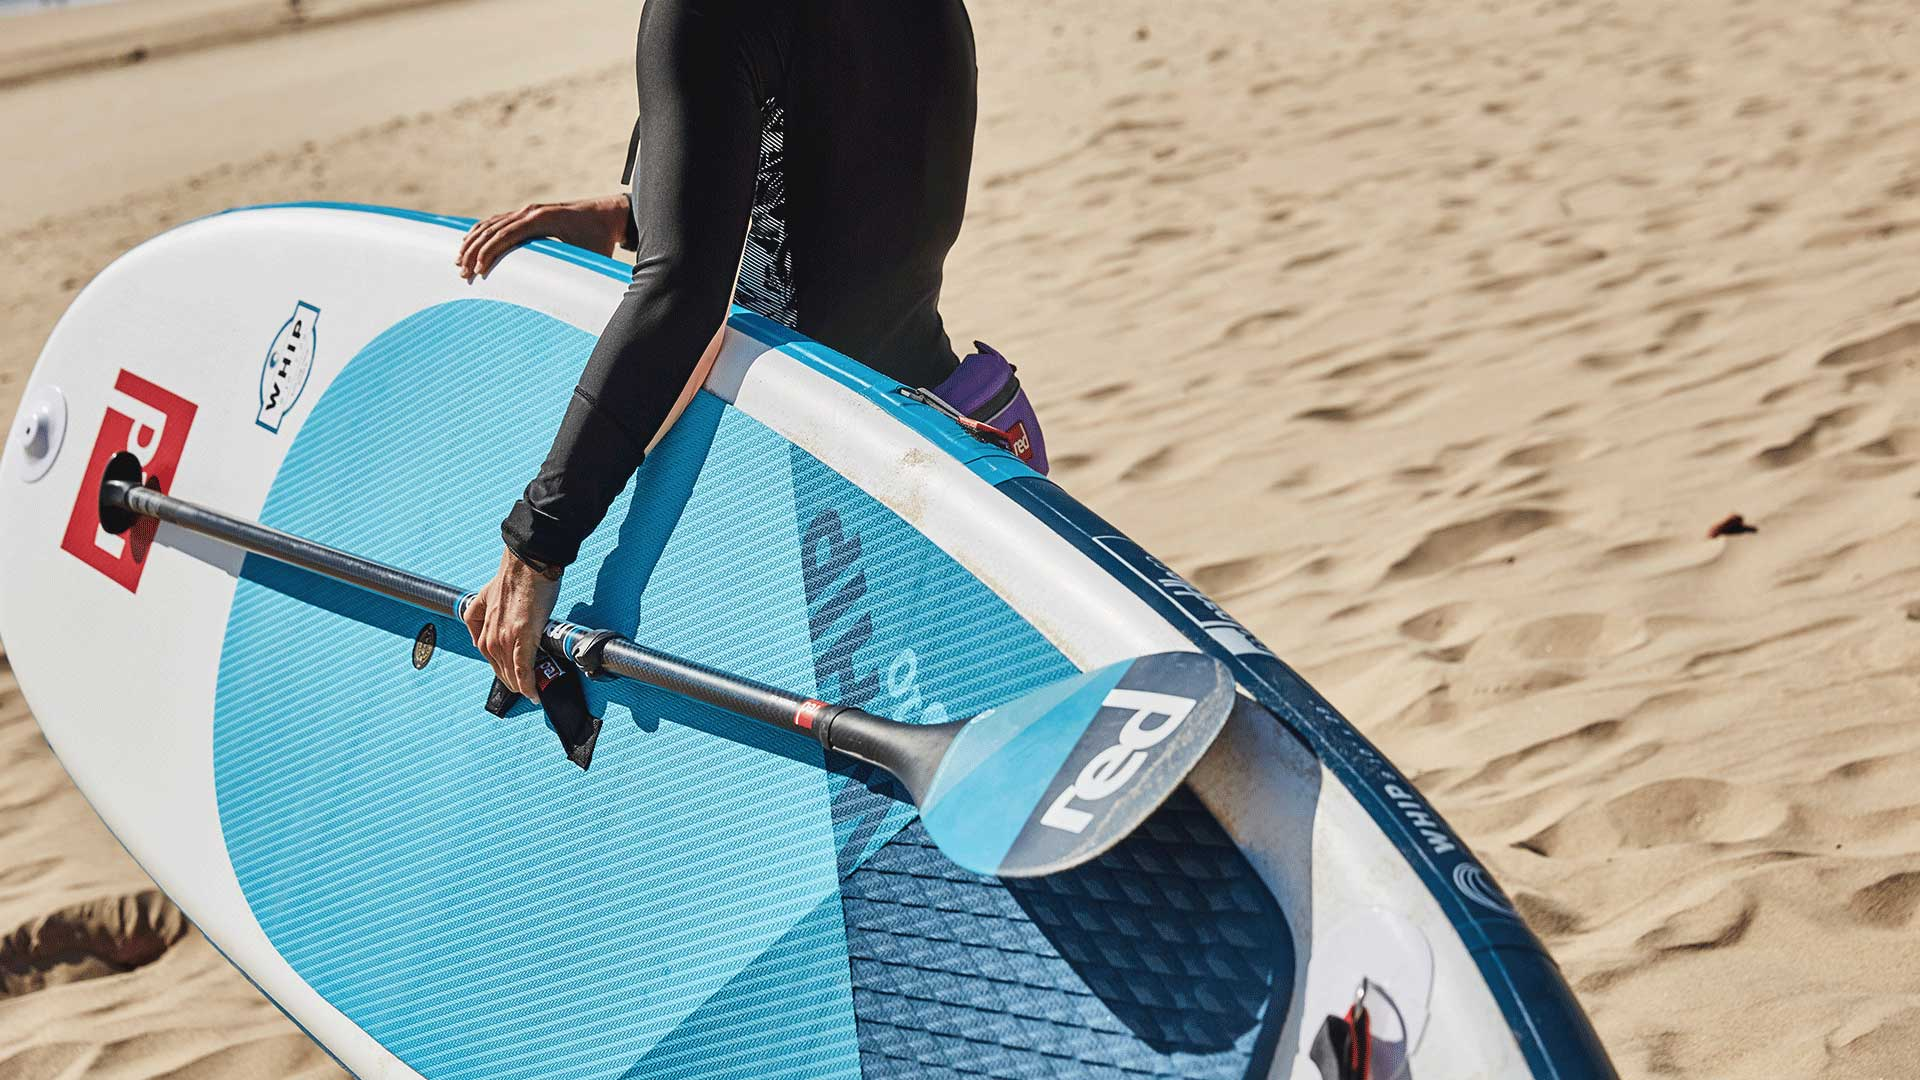 redpaddleco-810-whip-msl-inflatable-paddle-board-desktop-gallery-1